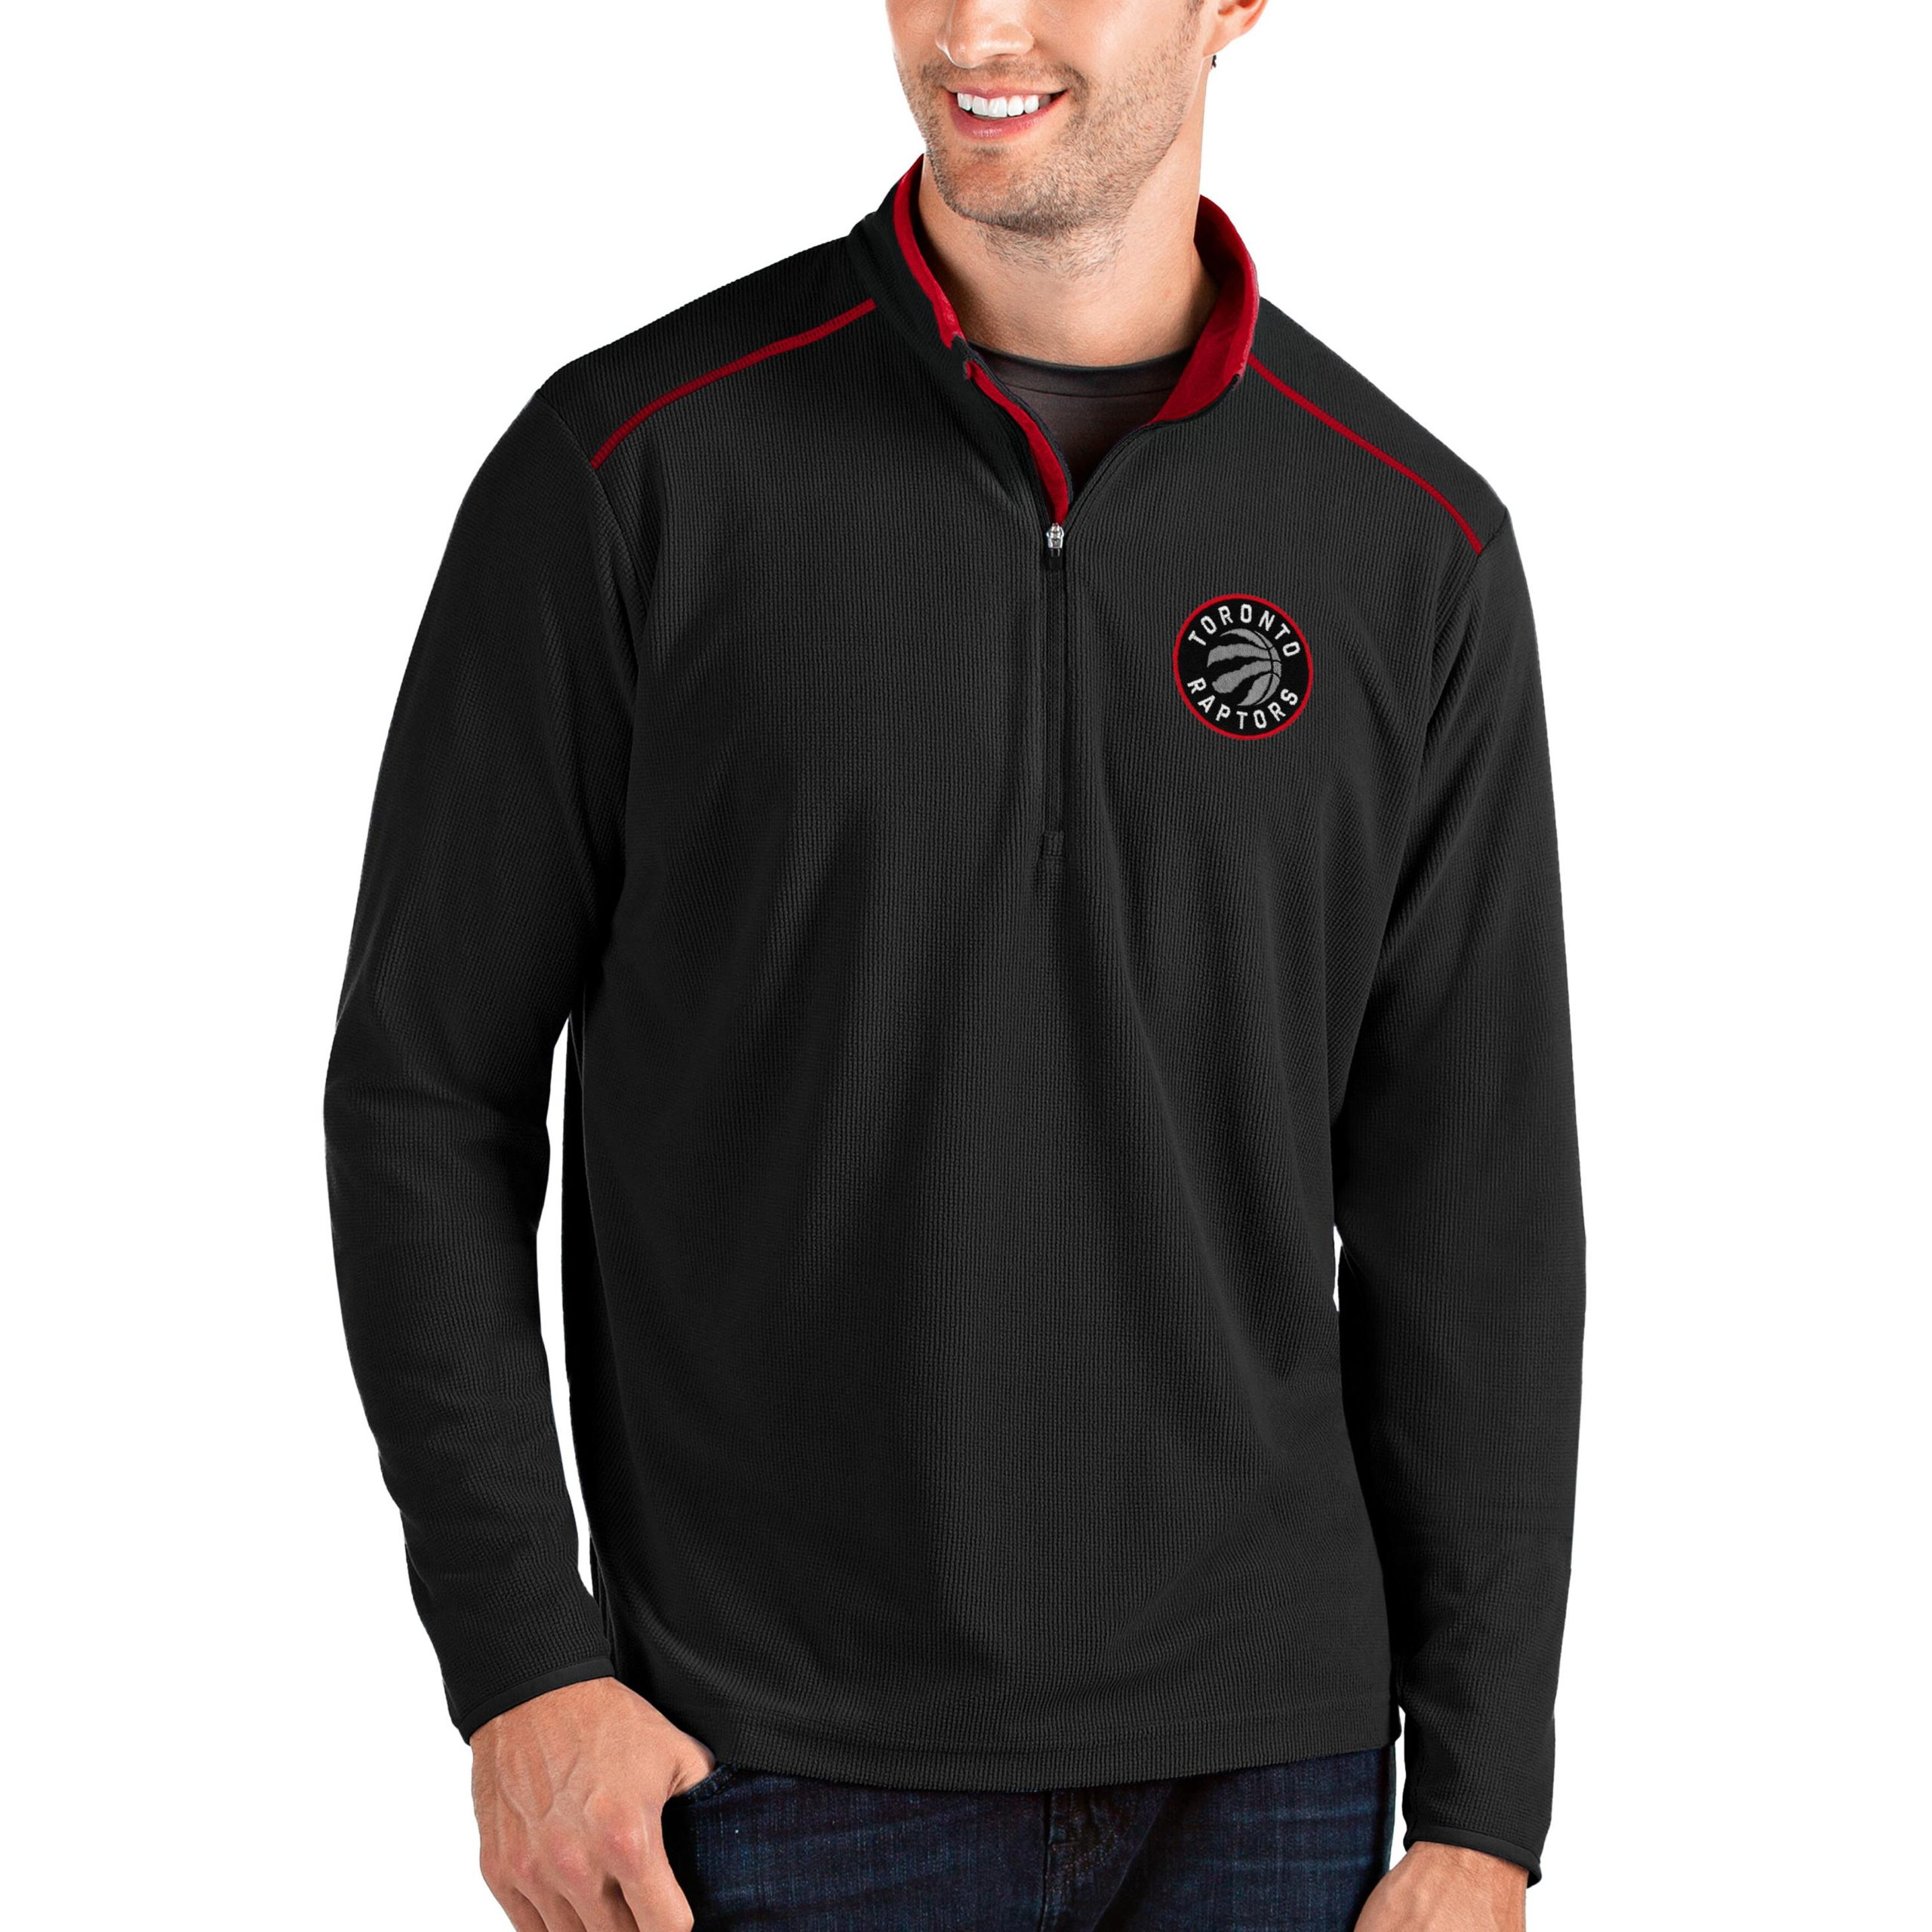 Toronto Raptors Antigua Big & Tall Glacier Quarter-Zip Pullover Jacket - Black/Red